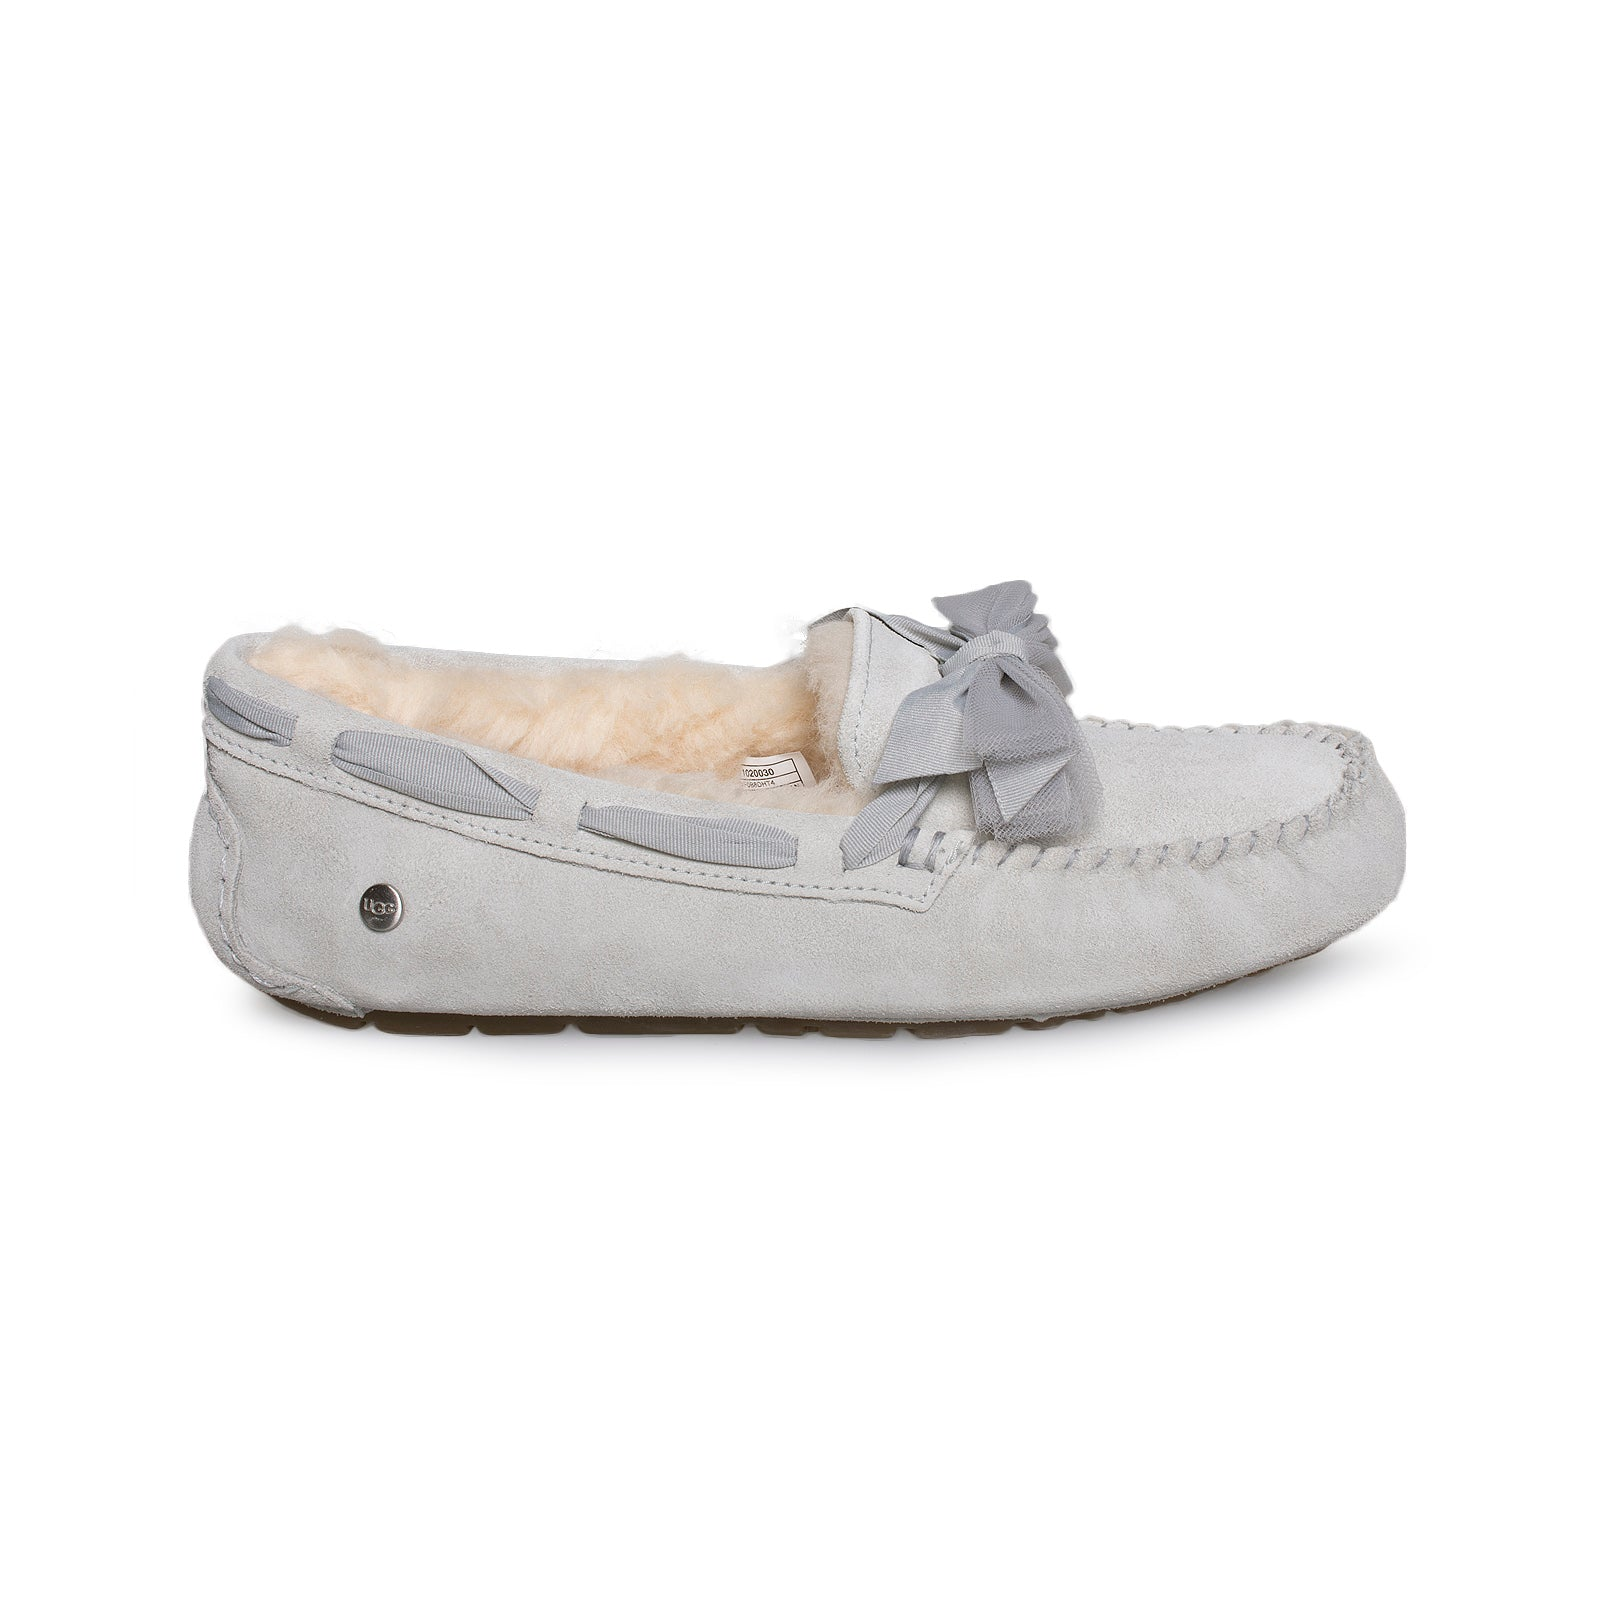 22b2e00f743 ForOffice | ugg slippers with bow